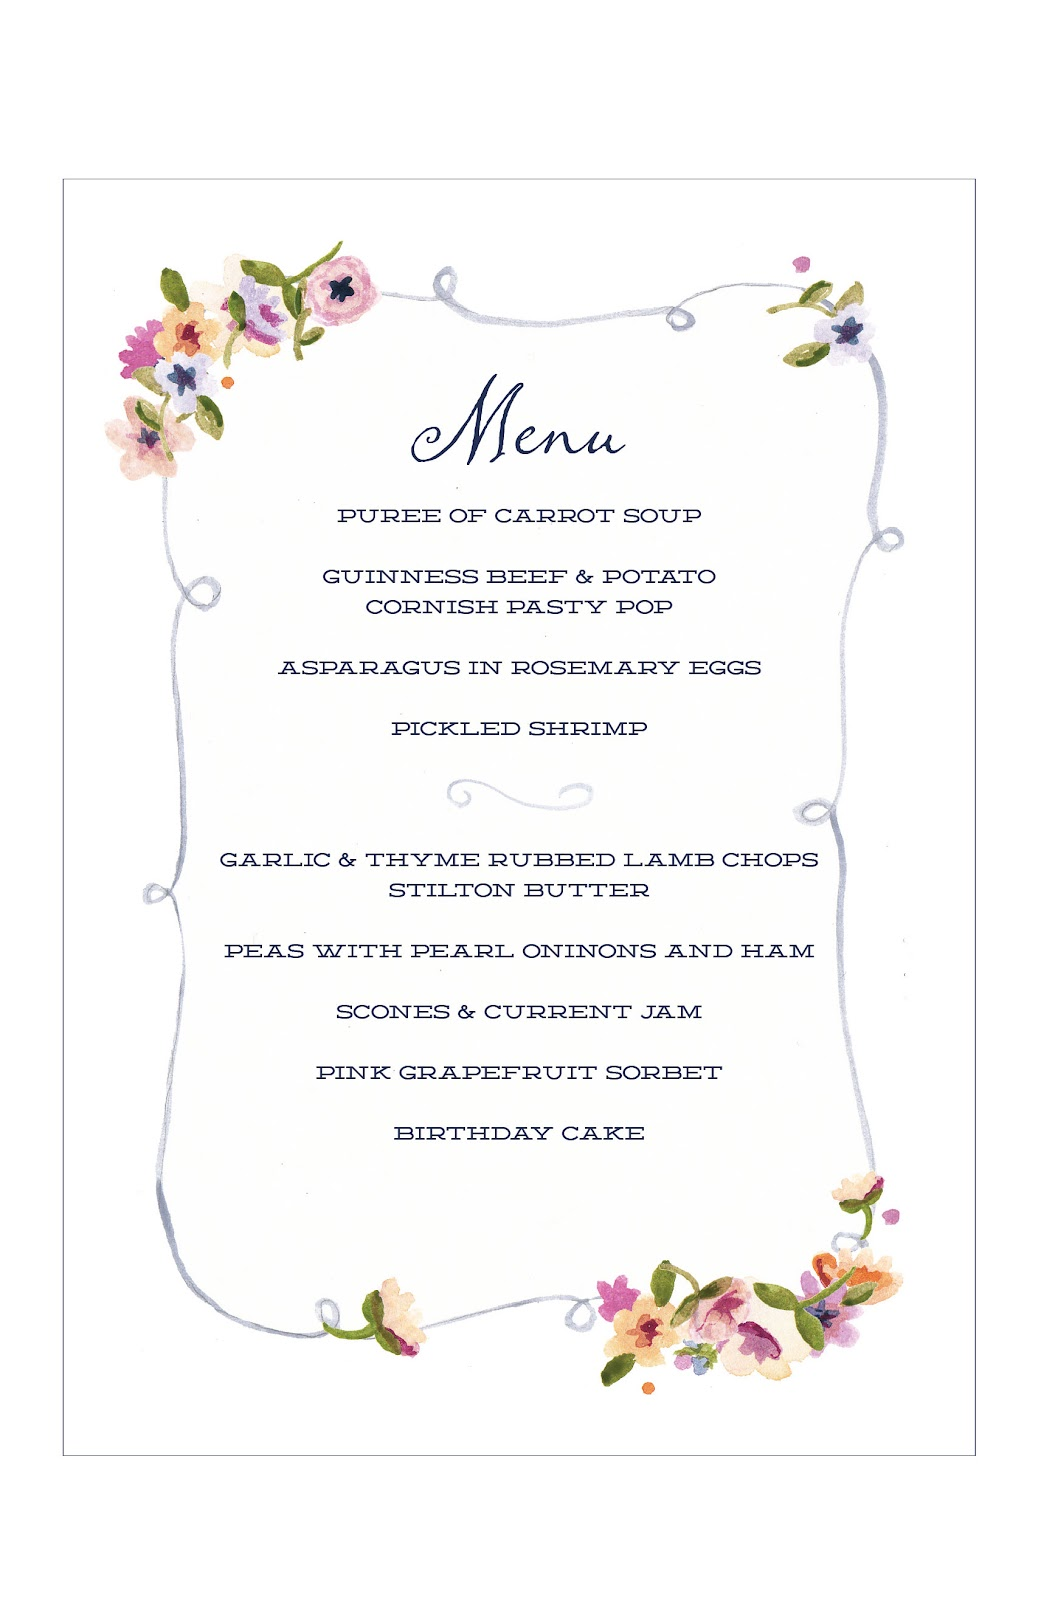 Tea party menu template dawaydabrowa tea party menu template stopboris Choice Image